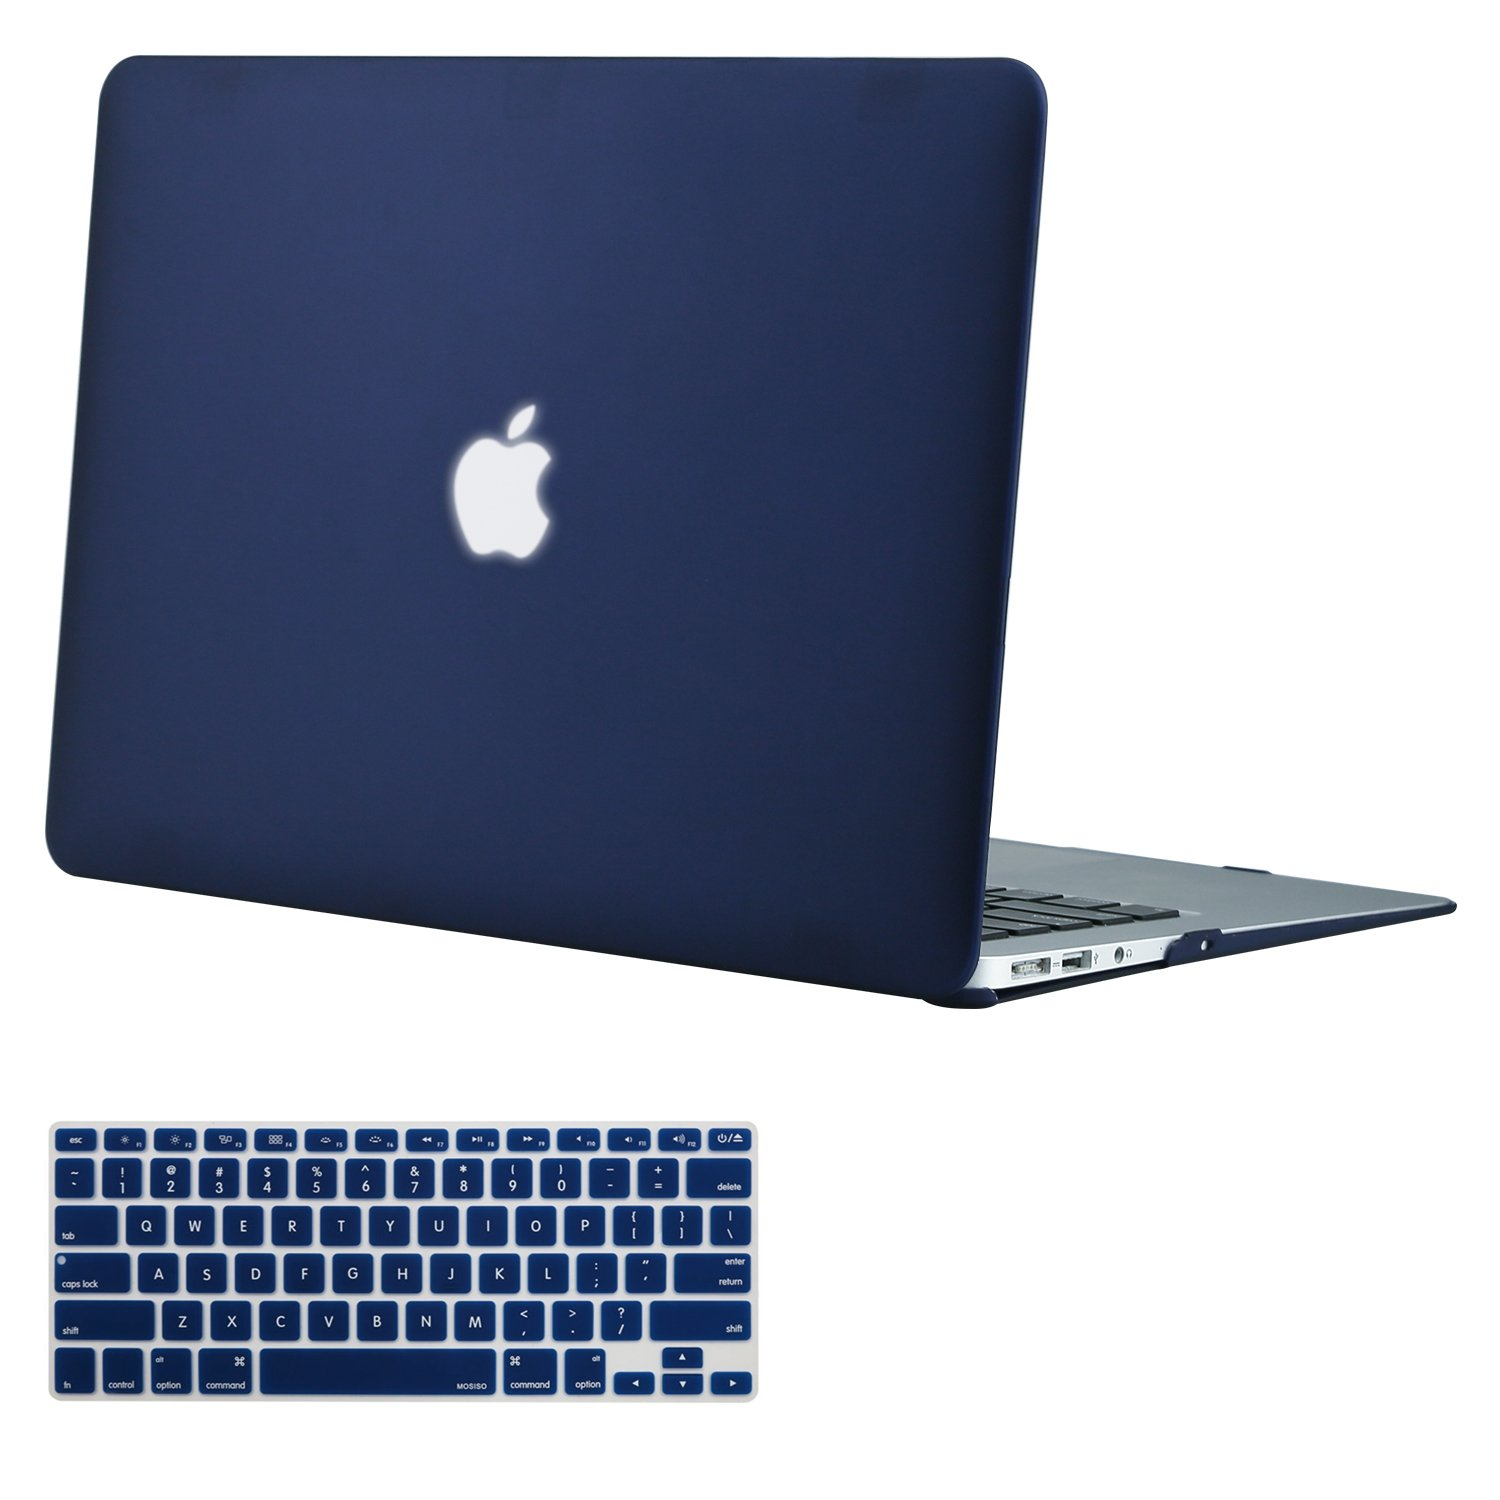 MOSISO Plastic Hard Shell Case & Keyboard Cover Compatible MacBook Air 13 Inch (Models: A1369 & A1466), Navy Blue